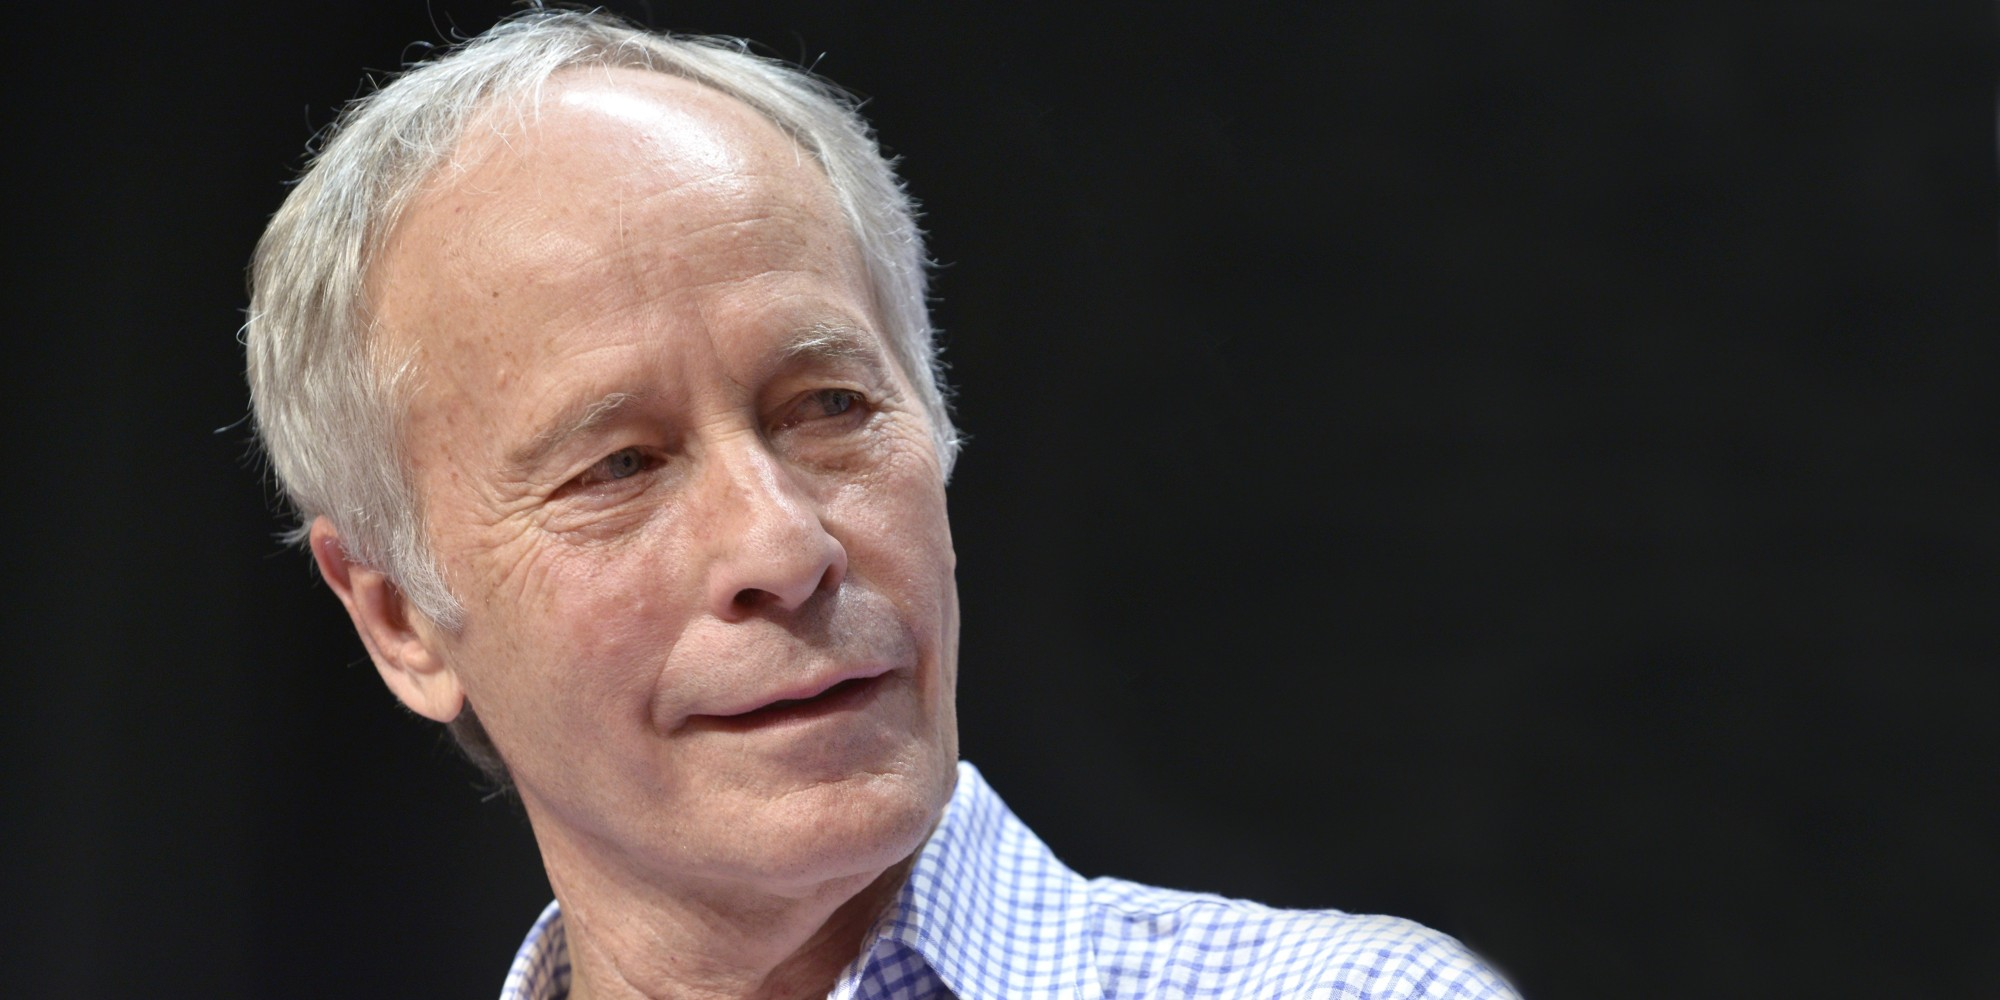 writer in focus richard ford Richard ford is the pulitzer prize-winning author of the bascombe novels and the new york times bestselling canada and let me be frank with youhe is the author of the renowned short story collections rock springs and a multitude of sinsford is the 2016 recipient of the asturias award for literature in spain, and he lives in east boothbay, maine with his wife, kristina ford.